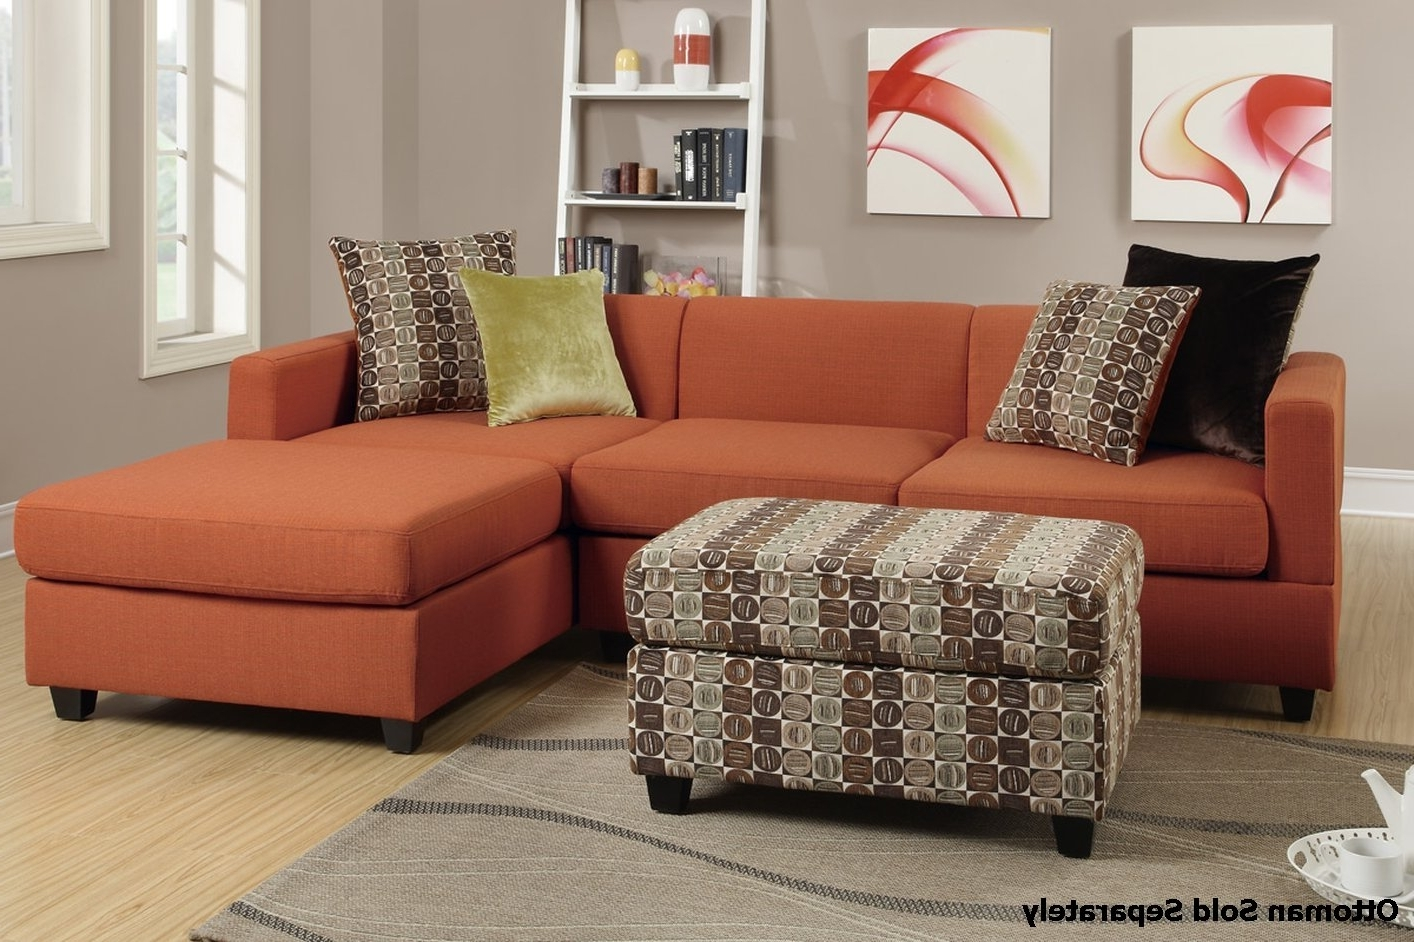 Sectional Sofa Design: Fabric Sectional Sofa Best Ever Ikea White With Latest Fabric Sectional Sofas (View 19 of 20)